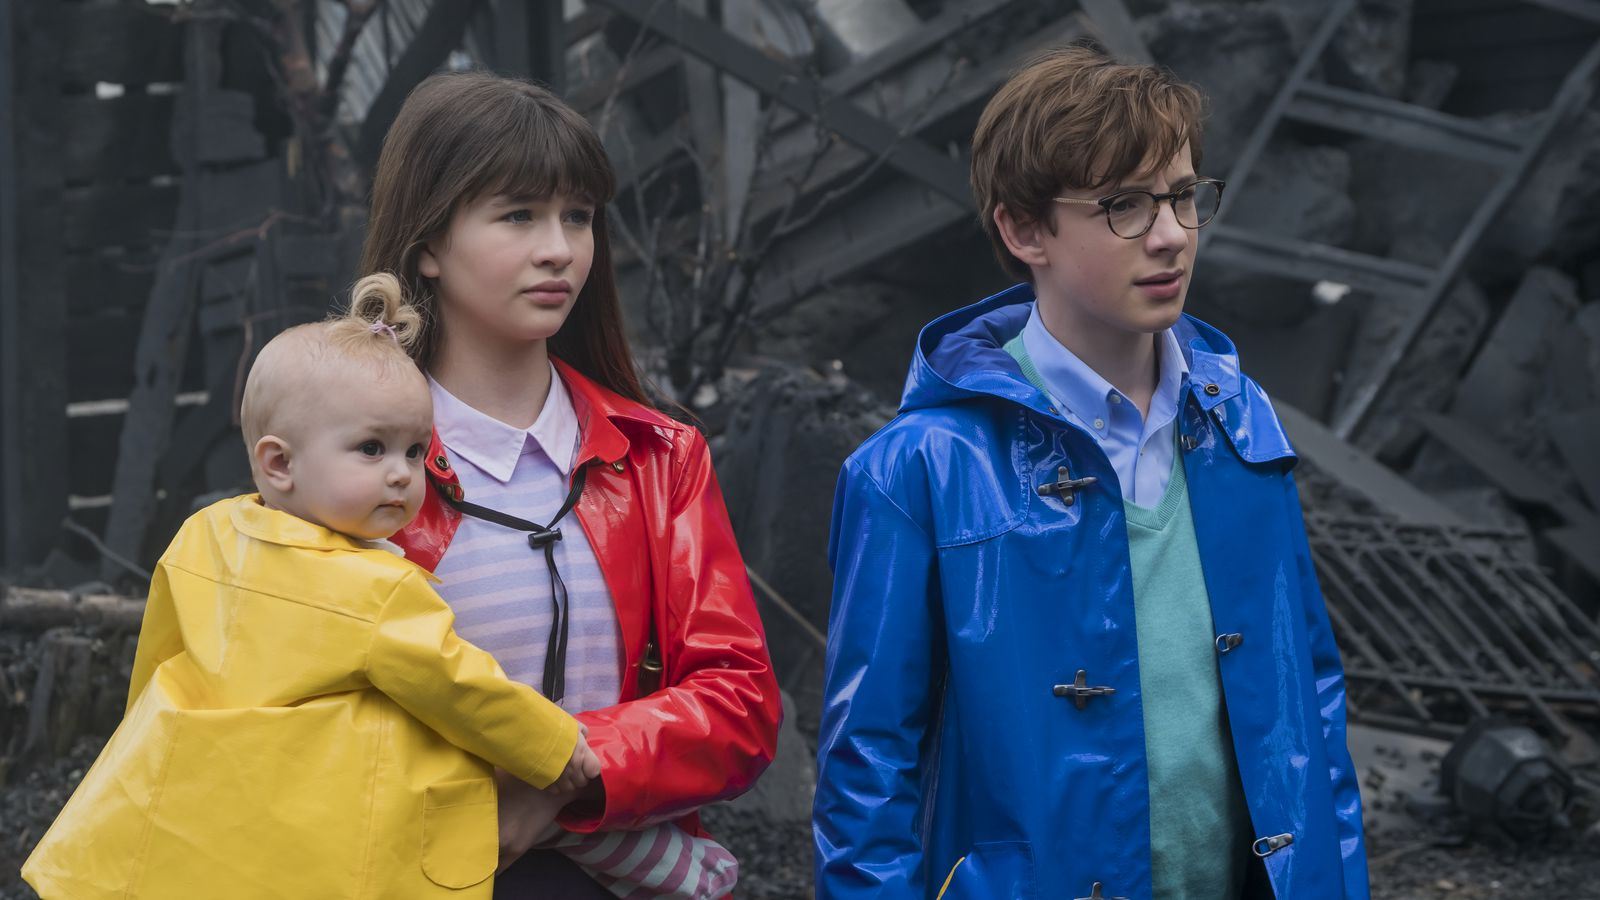 Lemony Snicket's A Series of Unfortunate Events: the 6 main